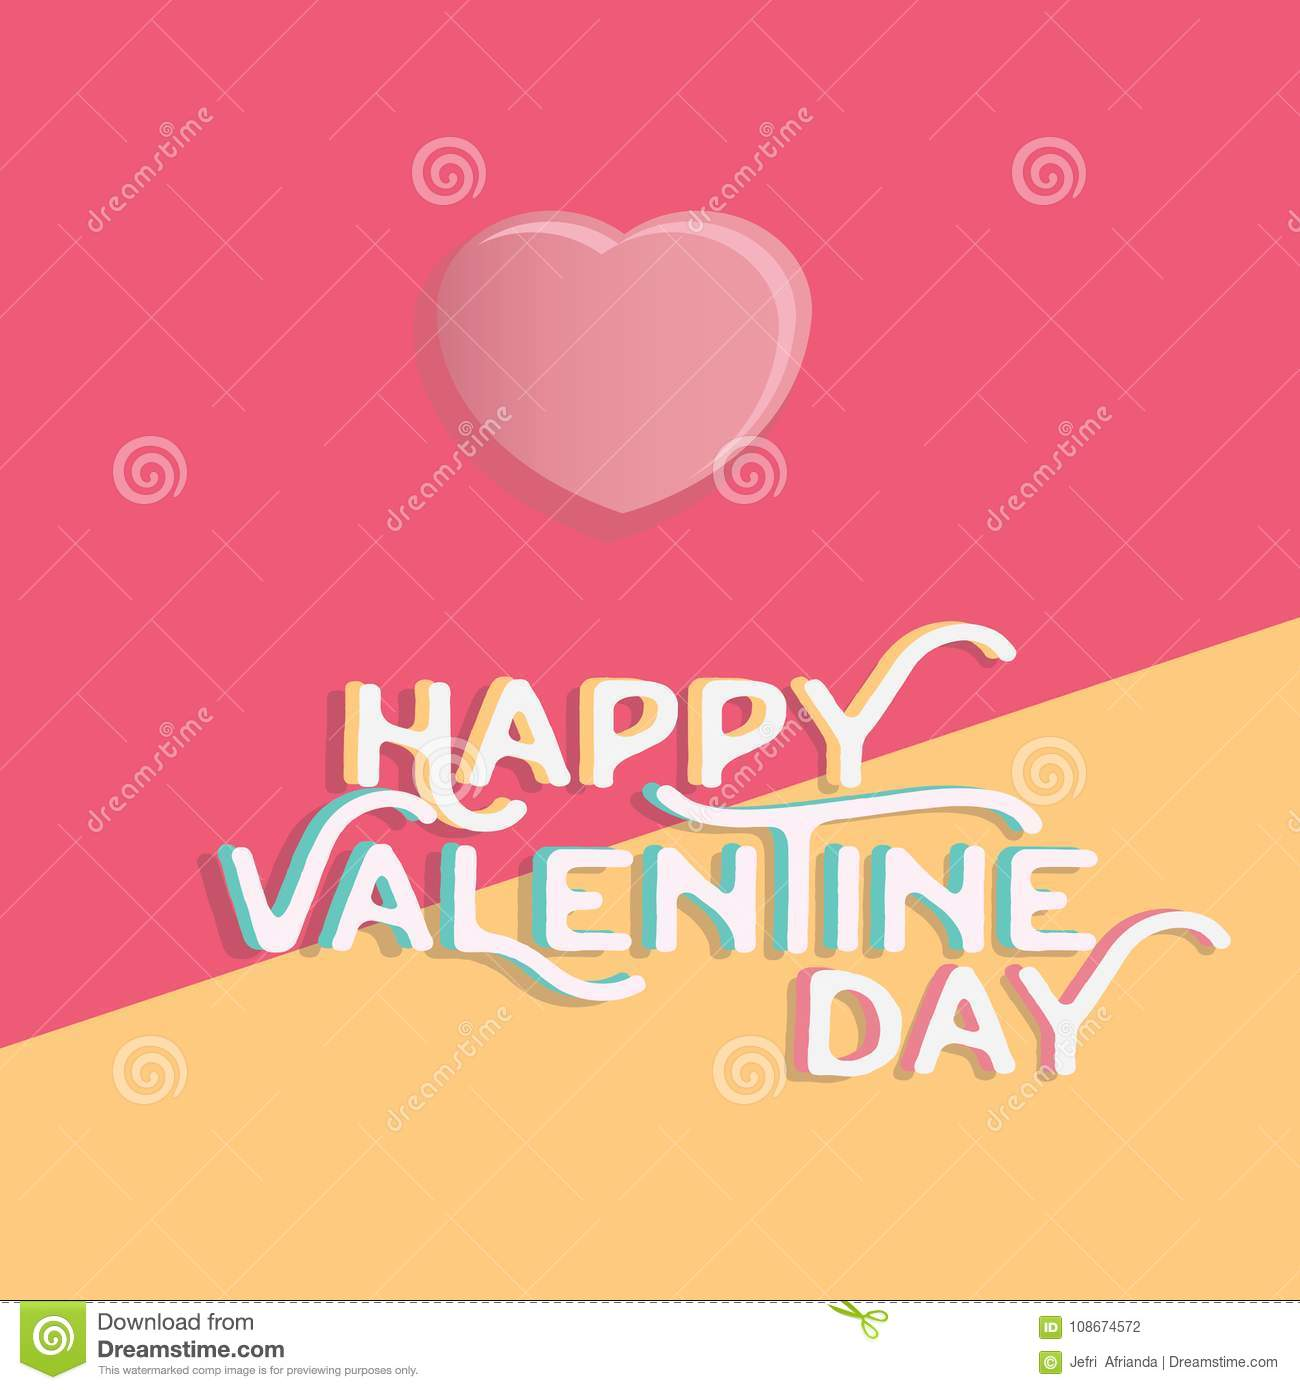 Download Happy Valentine`s Day Heart , Greeting Happy Valentine Day Holid Stock Vector - Illustration of graphic, hearts: 108674572